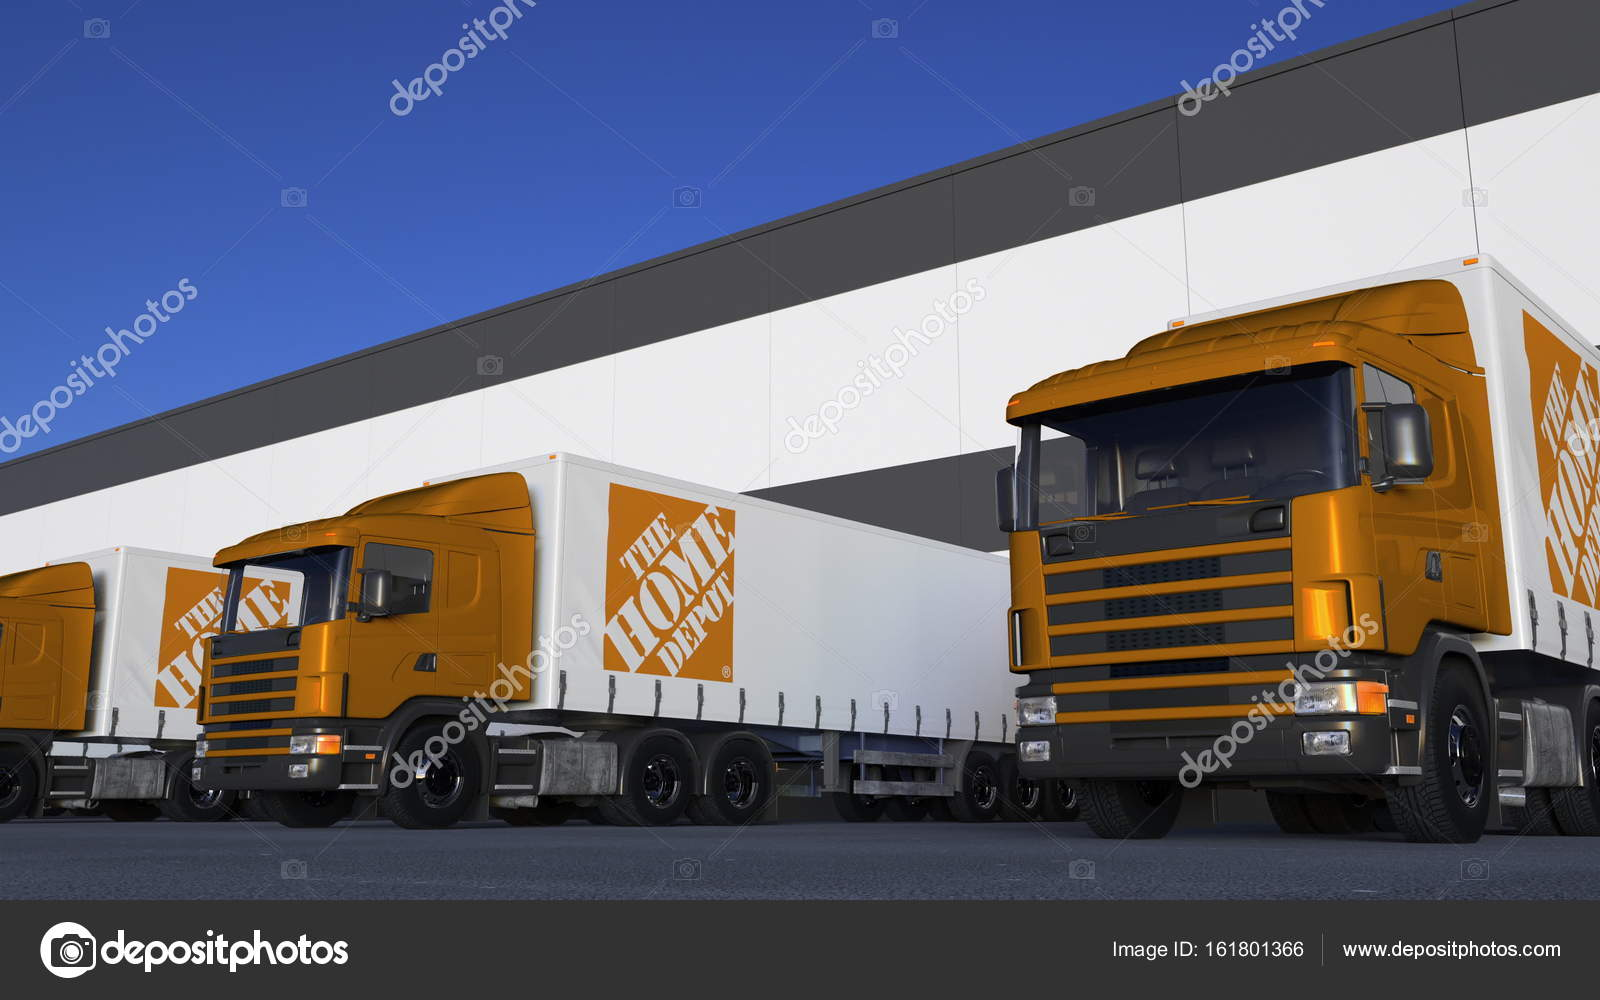 Freight semi trucks with The Home Depot logo loading or